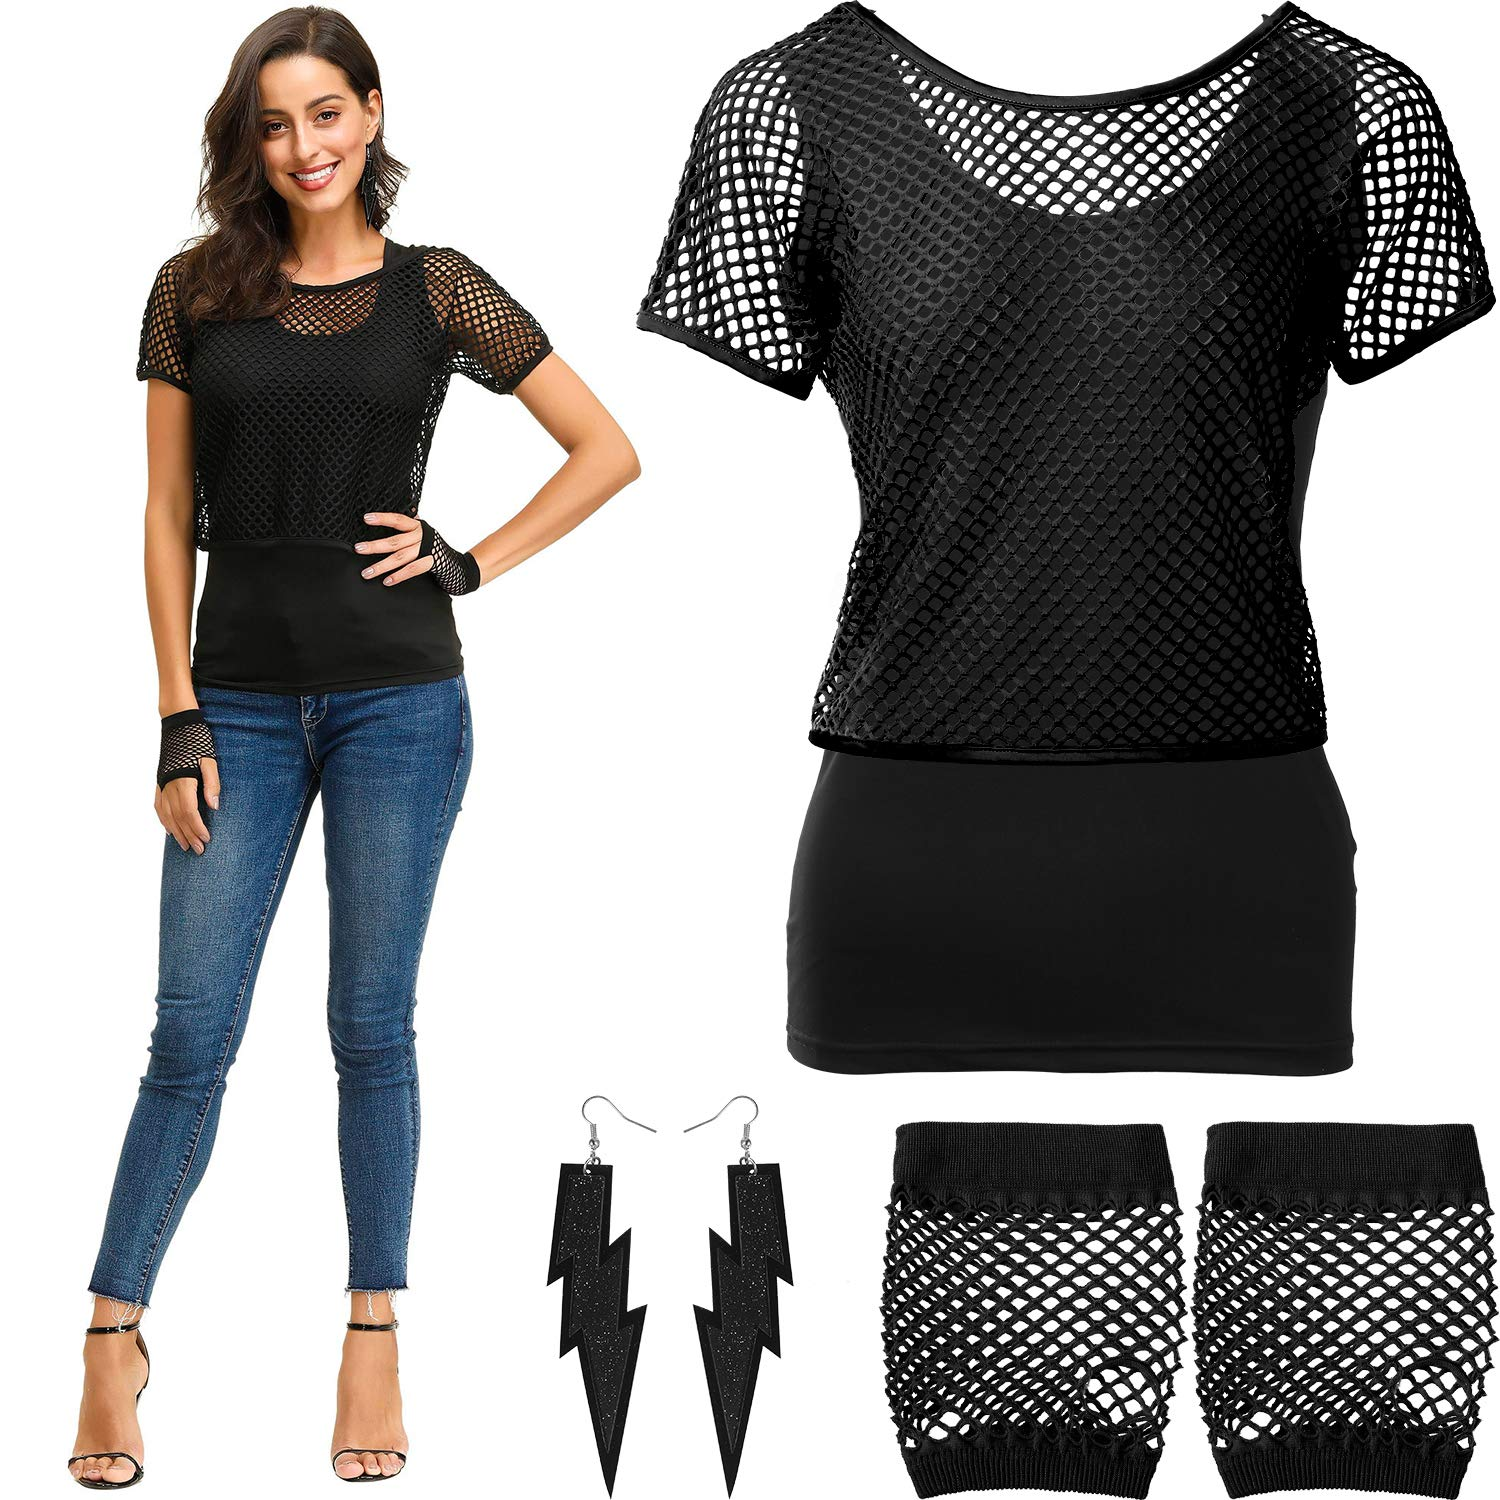 Fishnet Neon Off Shoulder T-Shirt Tank Gloves Earrings for 80 s Party 80s Costume Accessories Set